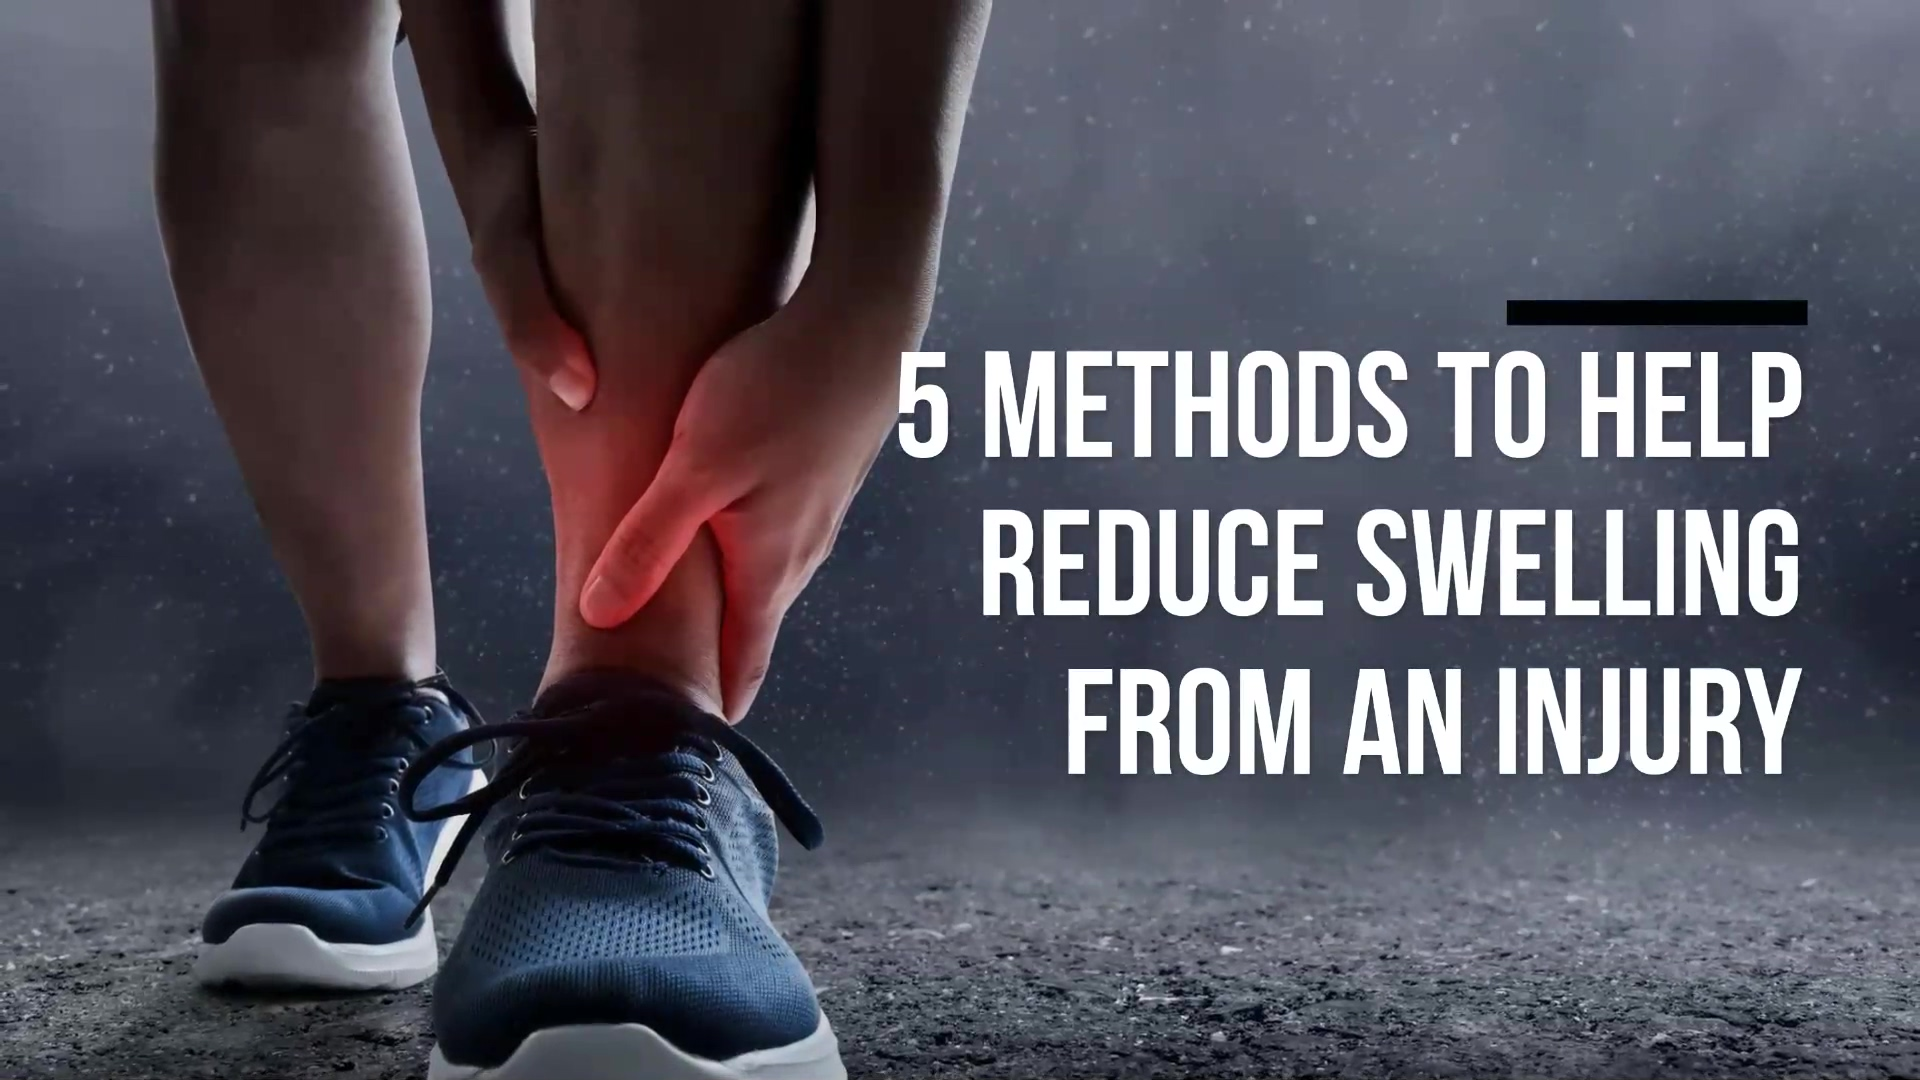 5_Methods_to_Help_Reduce_Swelling